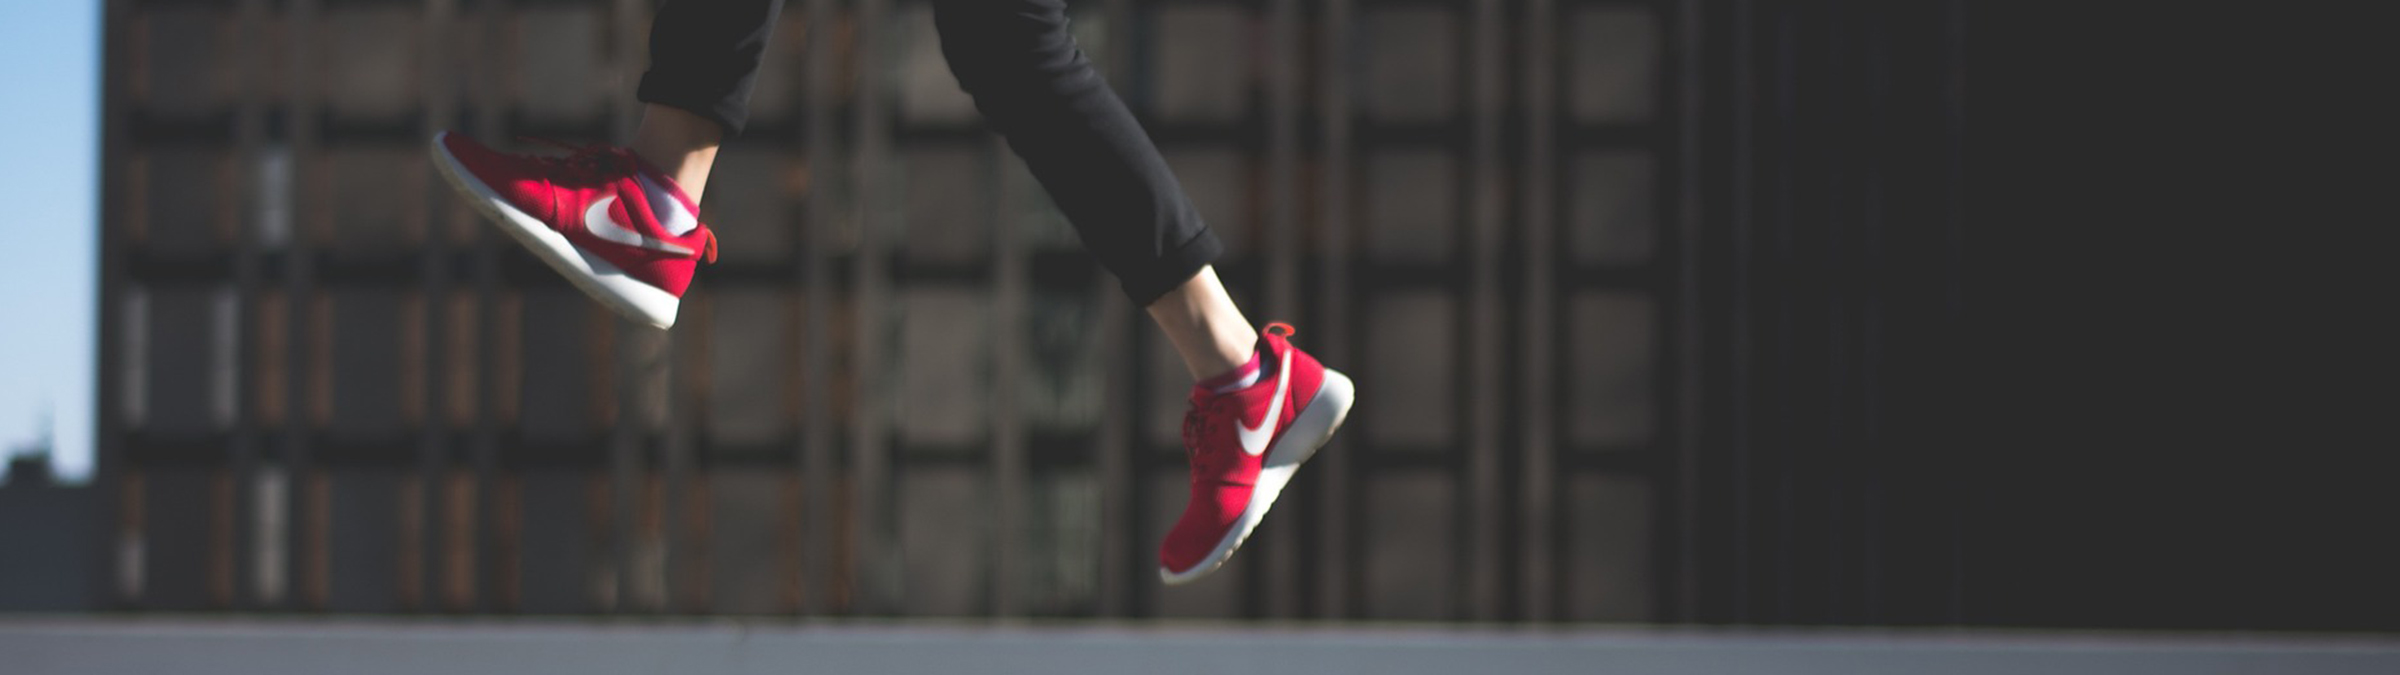 Nike are taking a mental health break | Will this work?